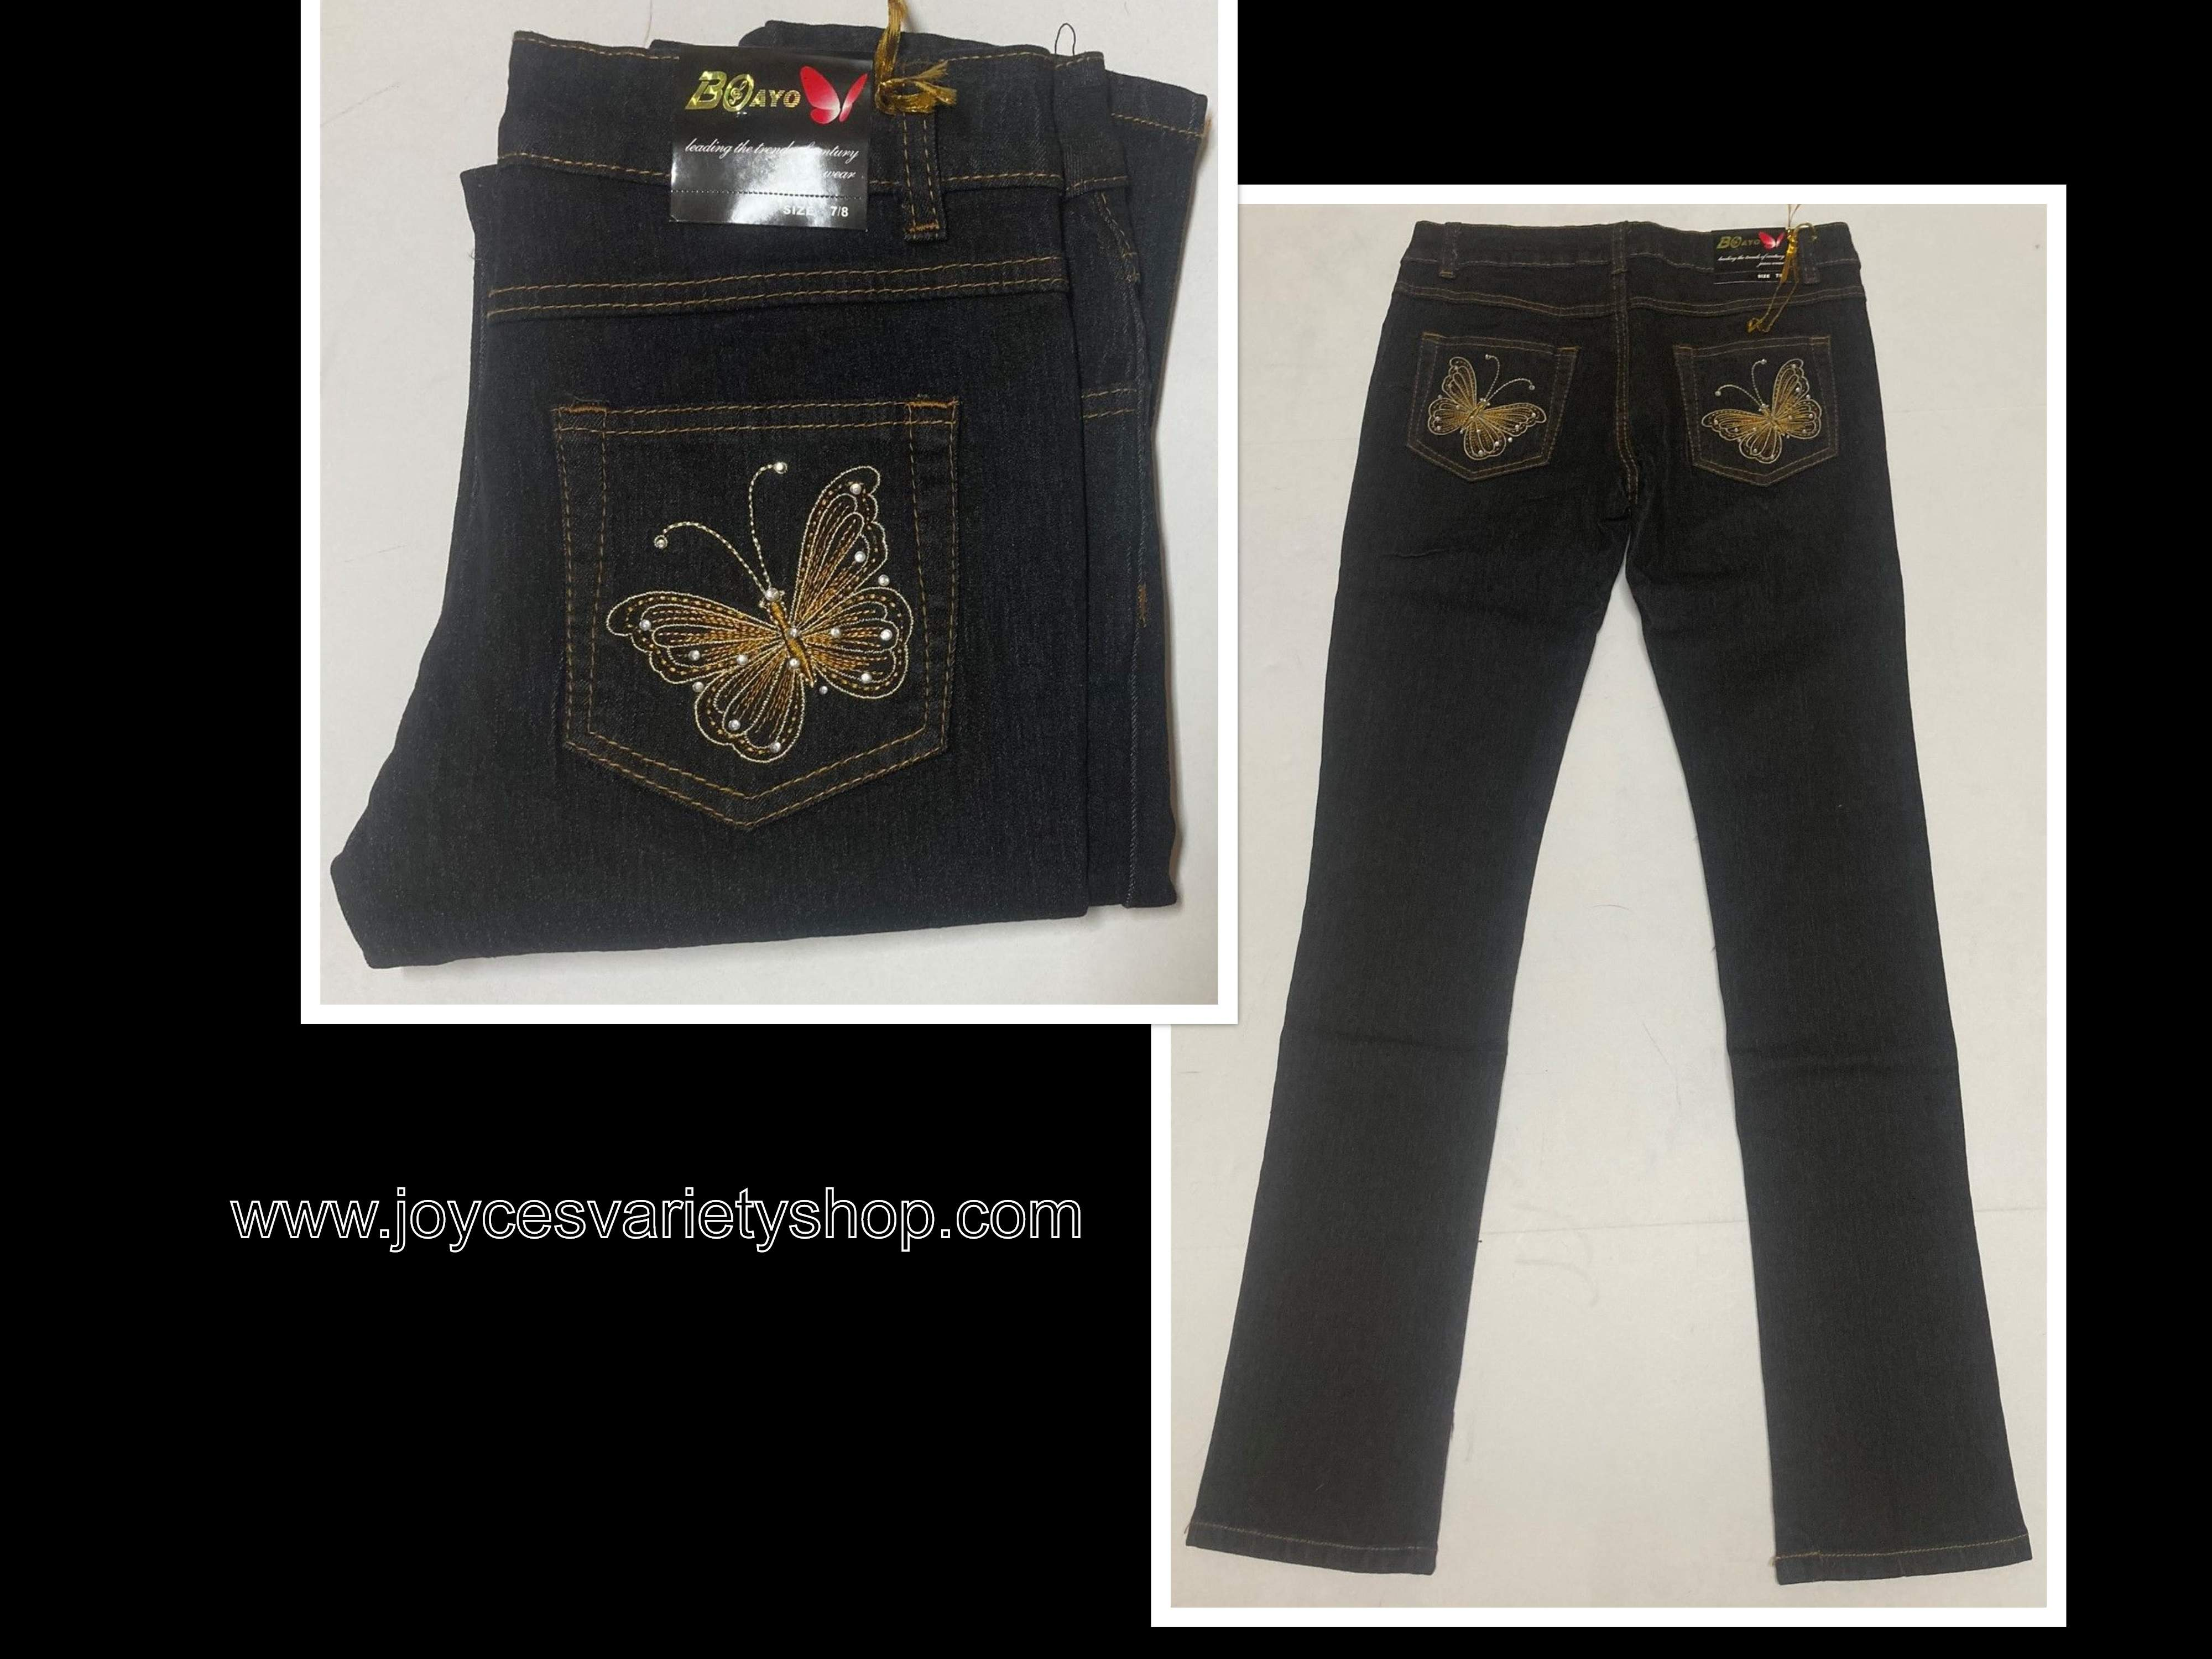 Boayo Black Jeans Indigo Stretch Gold Butterfly Design Various Sizes